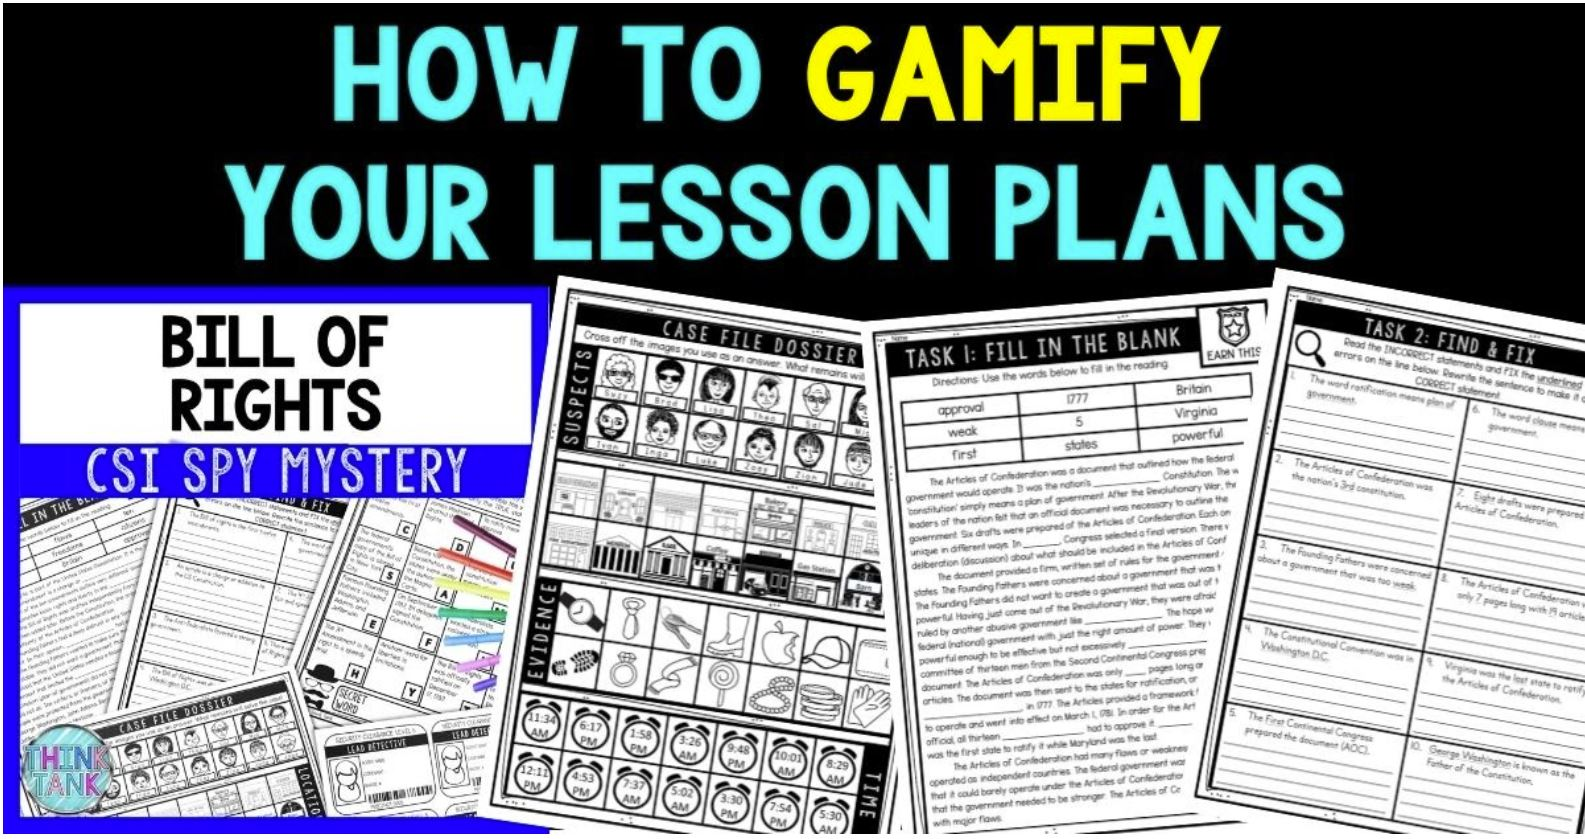 gamify lessons blog cover